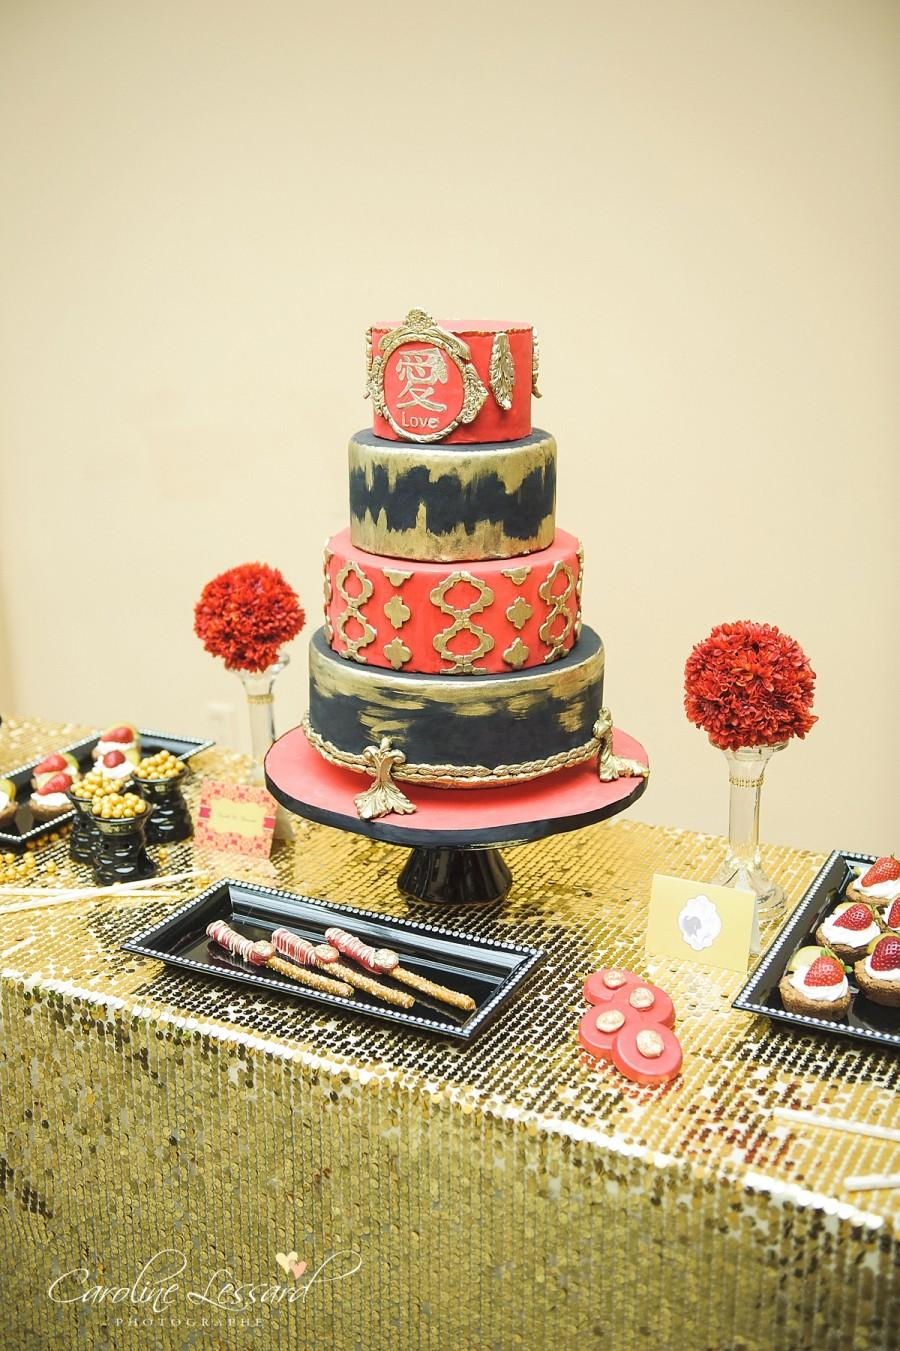 Elegant Red Black And Gold Wedding Cake #2515797 - Weddbook